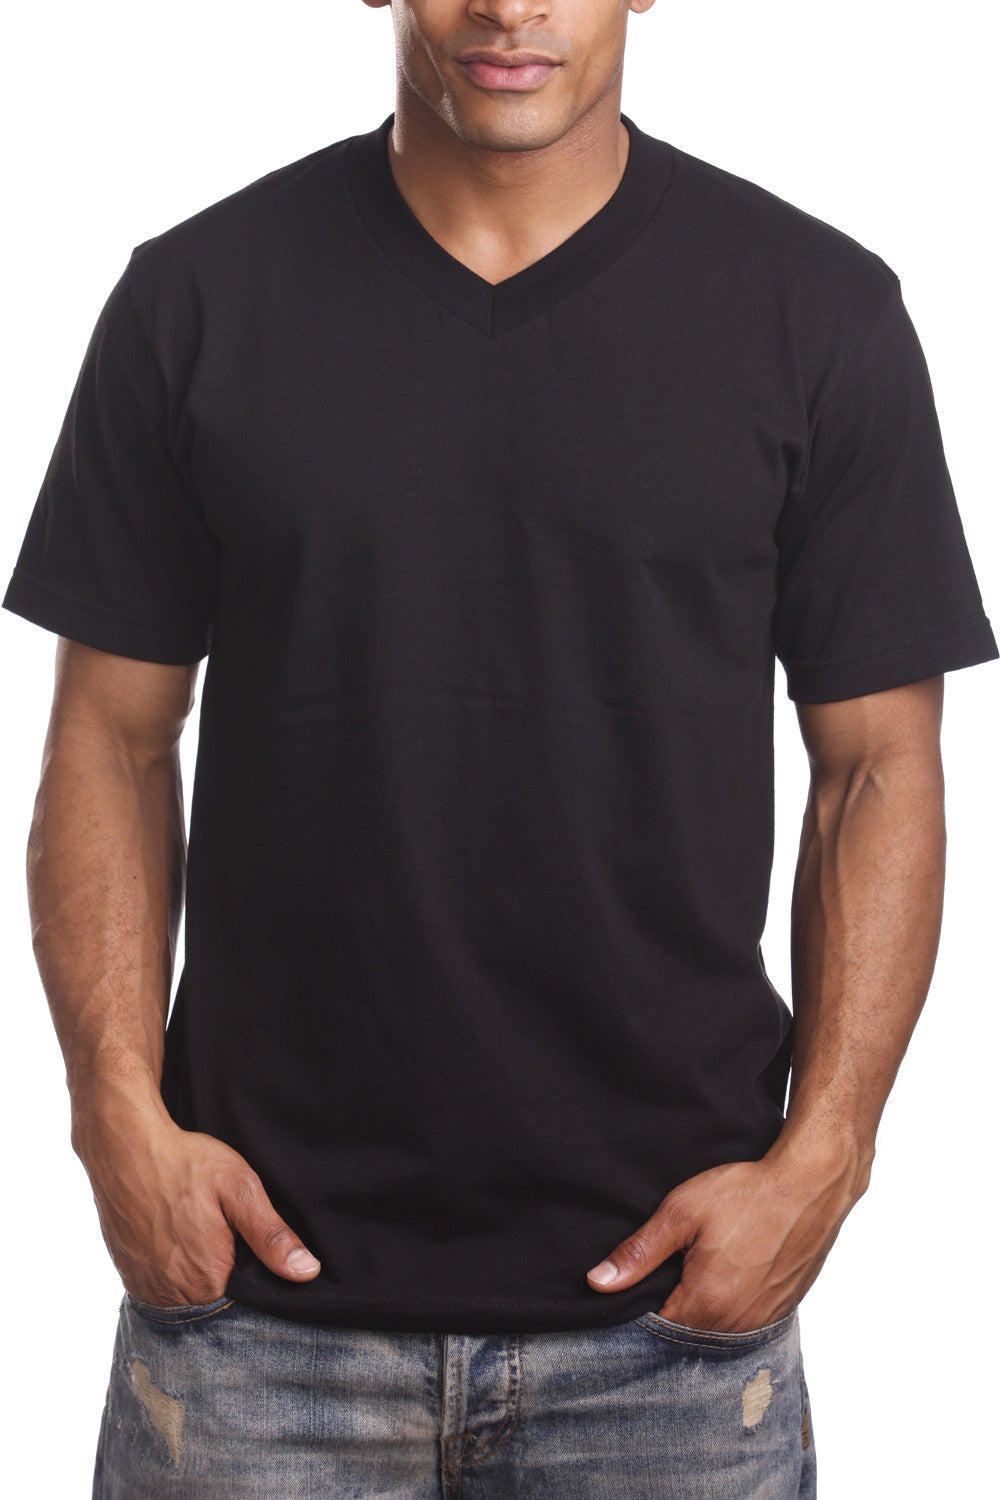 V neck t shirt 2xl 5xl pro 5 apparel V neck black t shirt